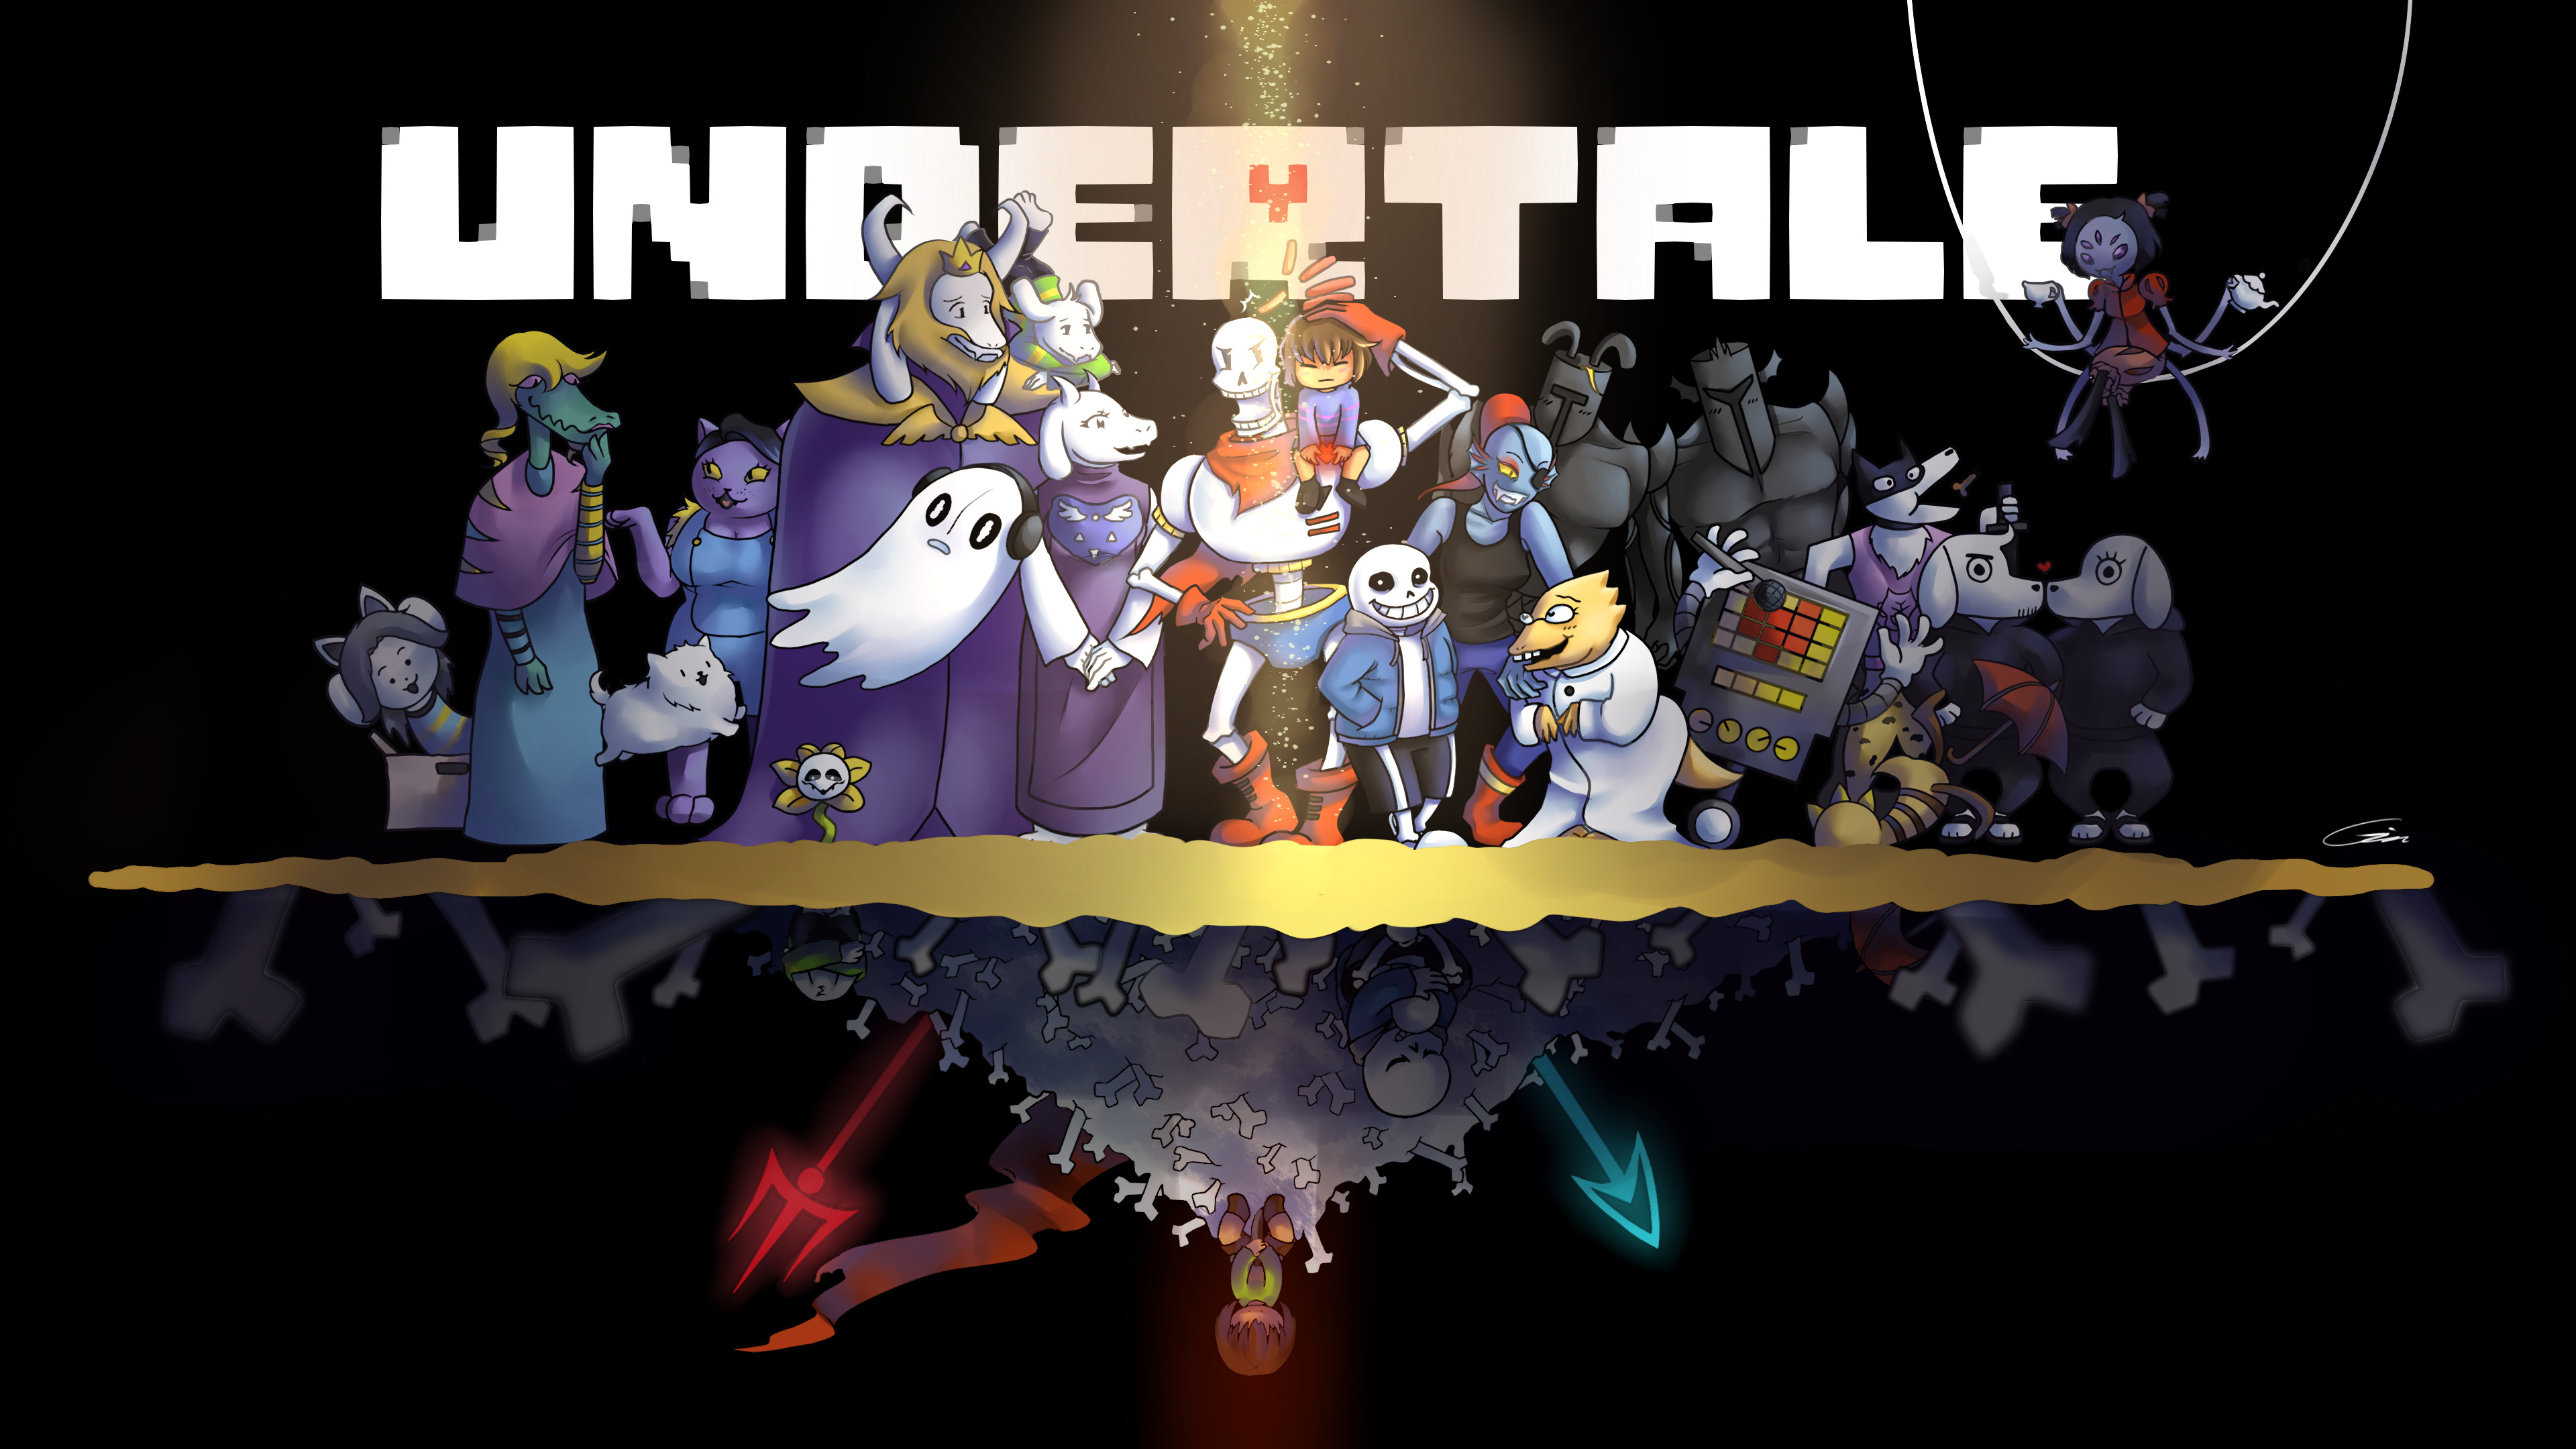 3840x2160 HD Wallpaper | Background Image ID:798682.  Video Game Undertale